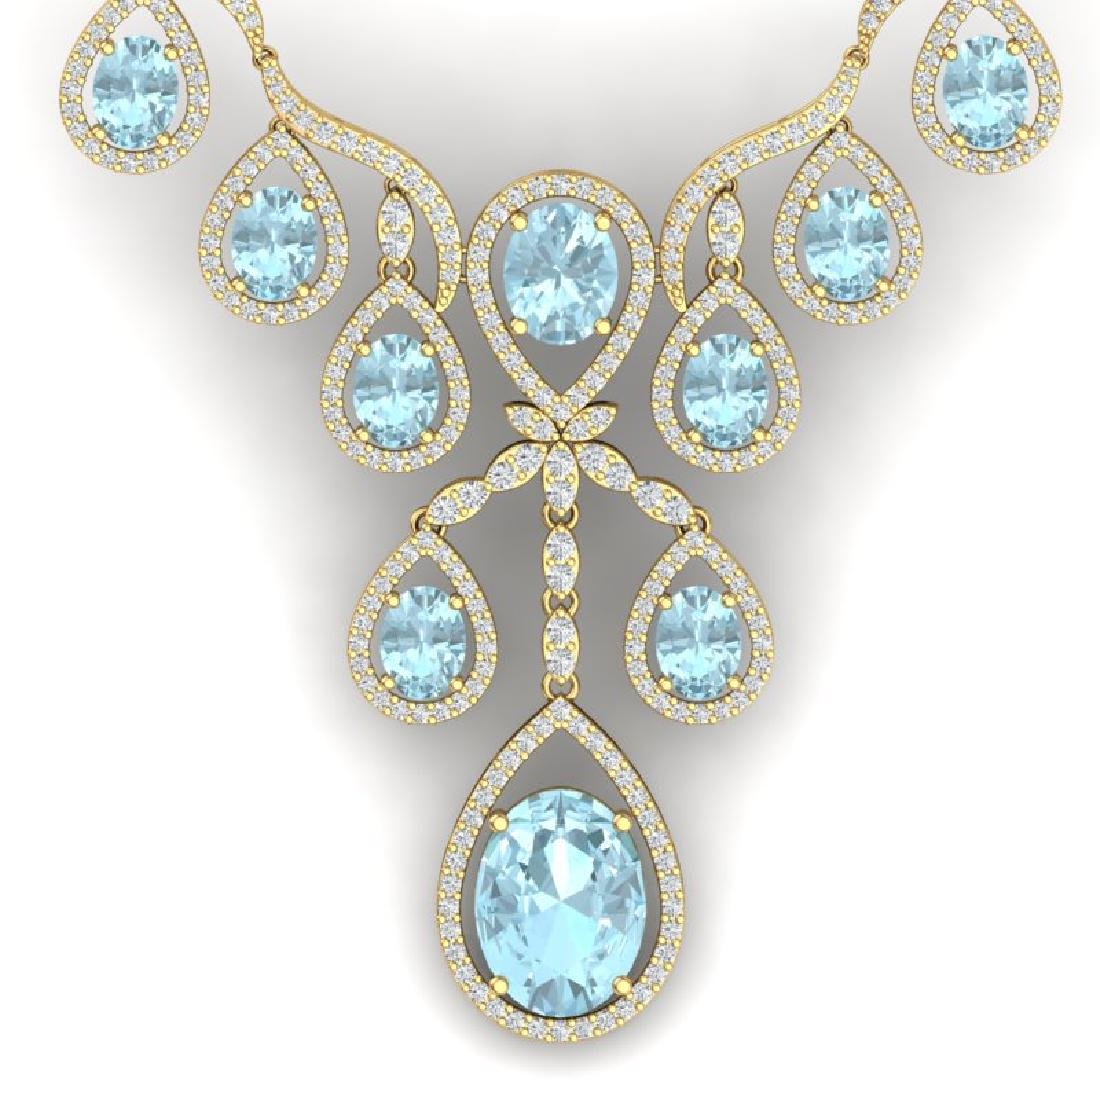 37.91 CTW Royalty Sky Topaz & VS Diamond Necklace 18K